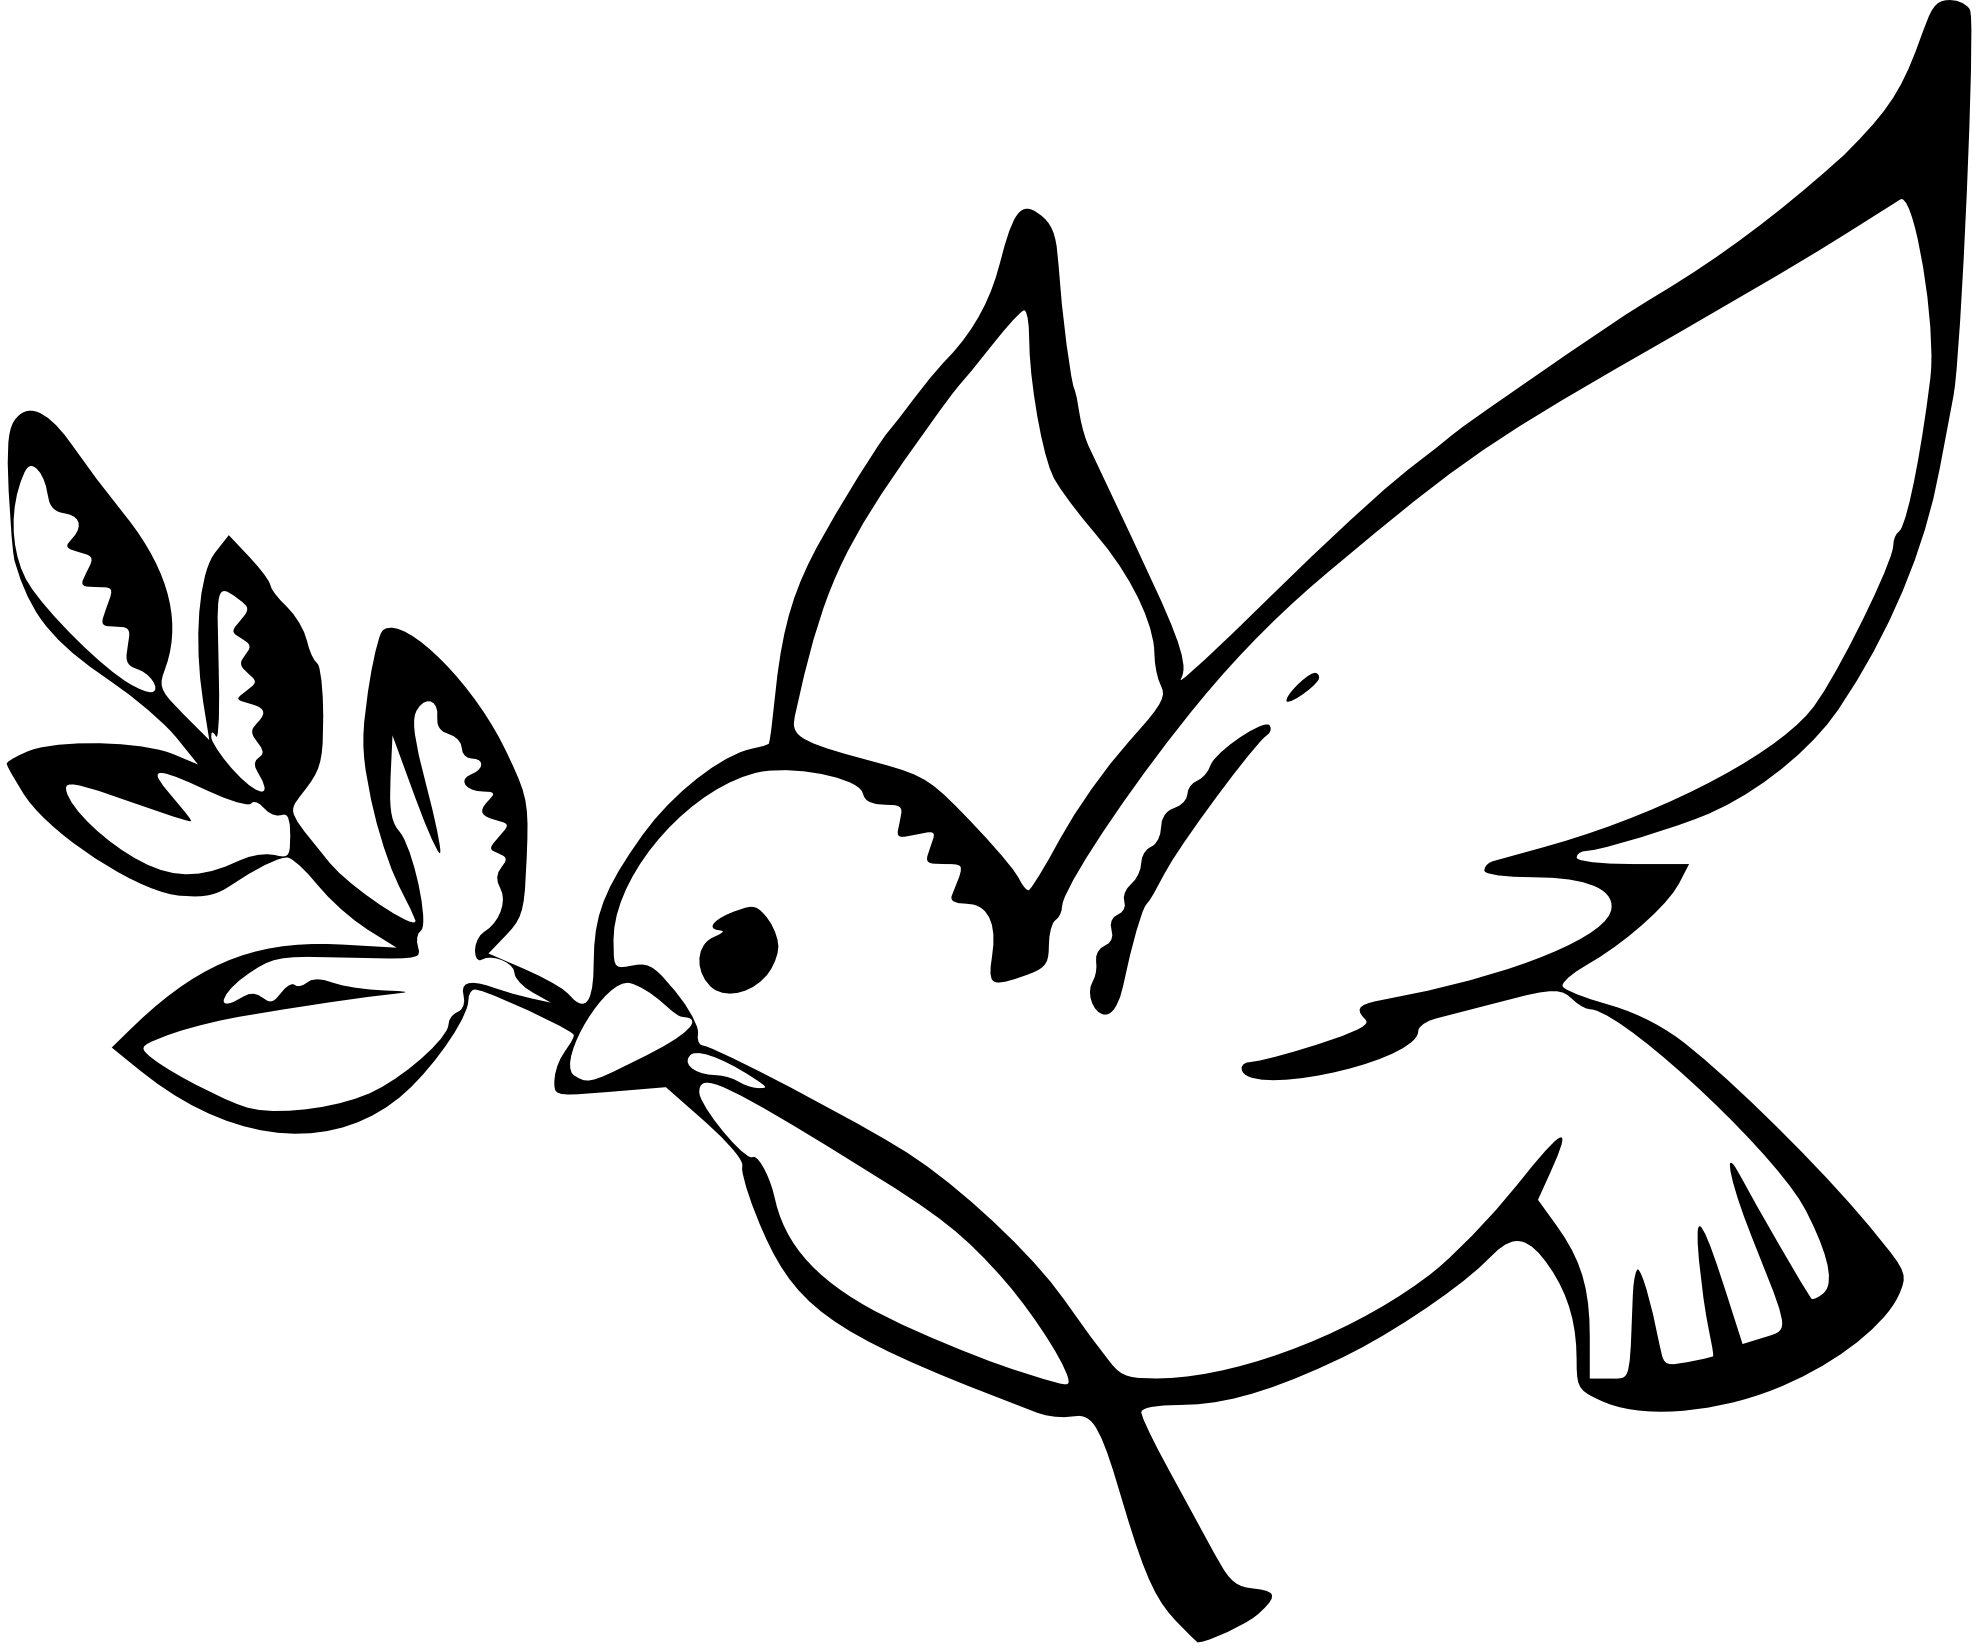 Nativity drawings dove peace. Pencil clipart coloring